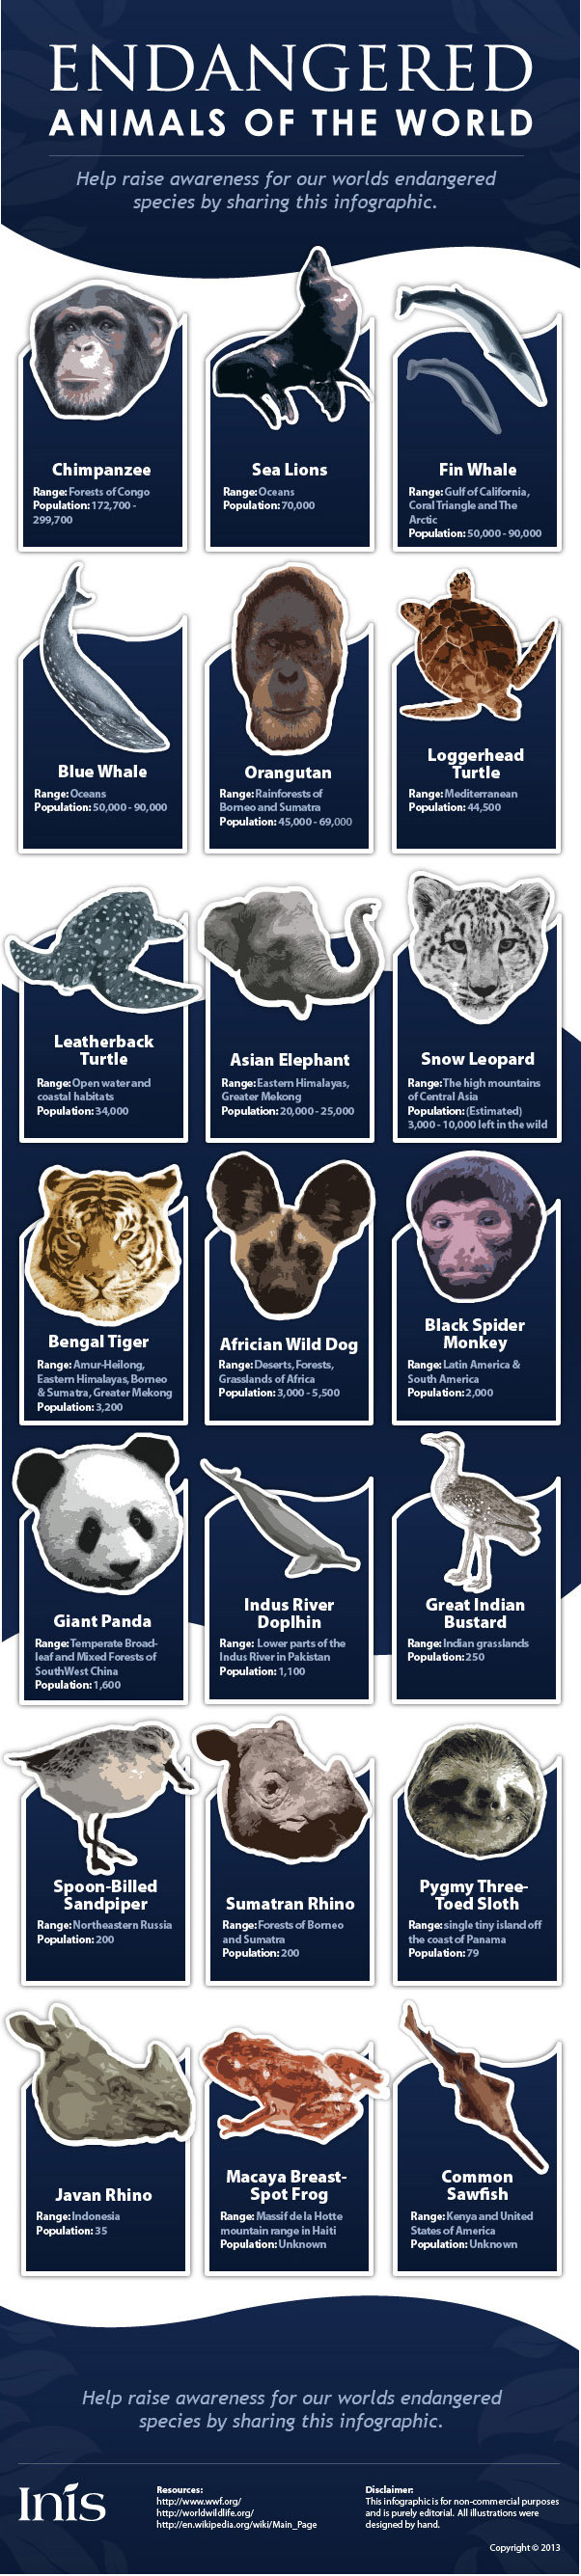 INIS, INIS environment, endangered animals, world endangered animals, mass extinction, extinction, infographic, reader submission, rhino extinction, rhinos, sloth endangered, endangered frogs, endangered mammals